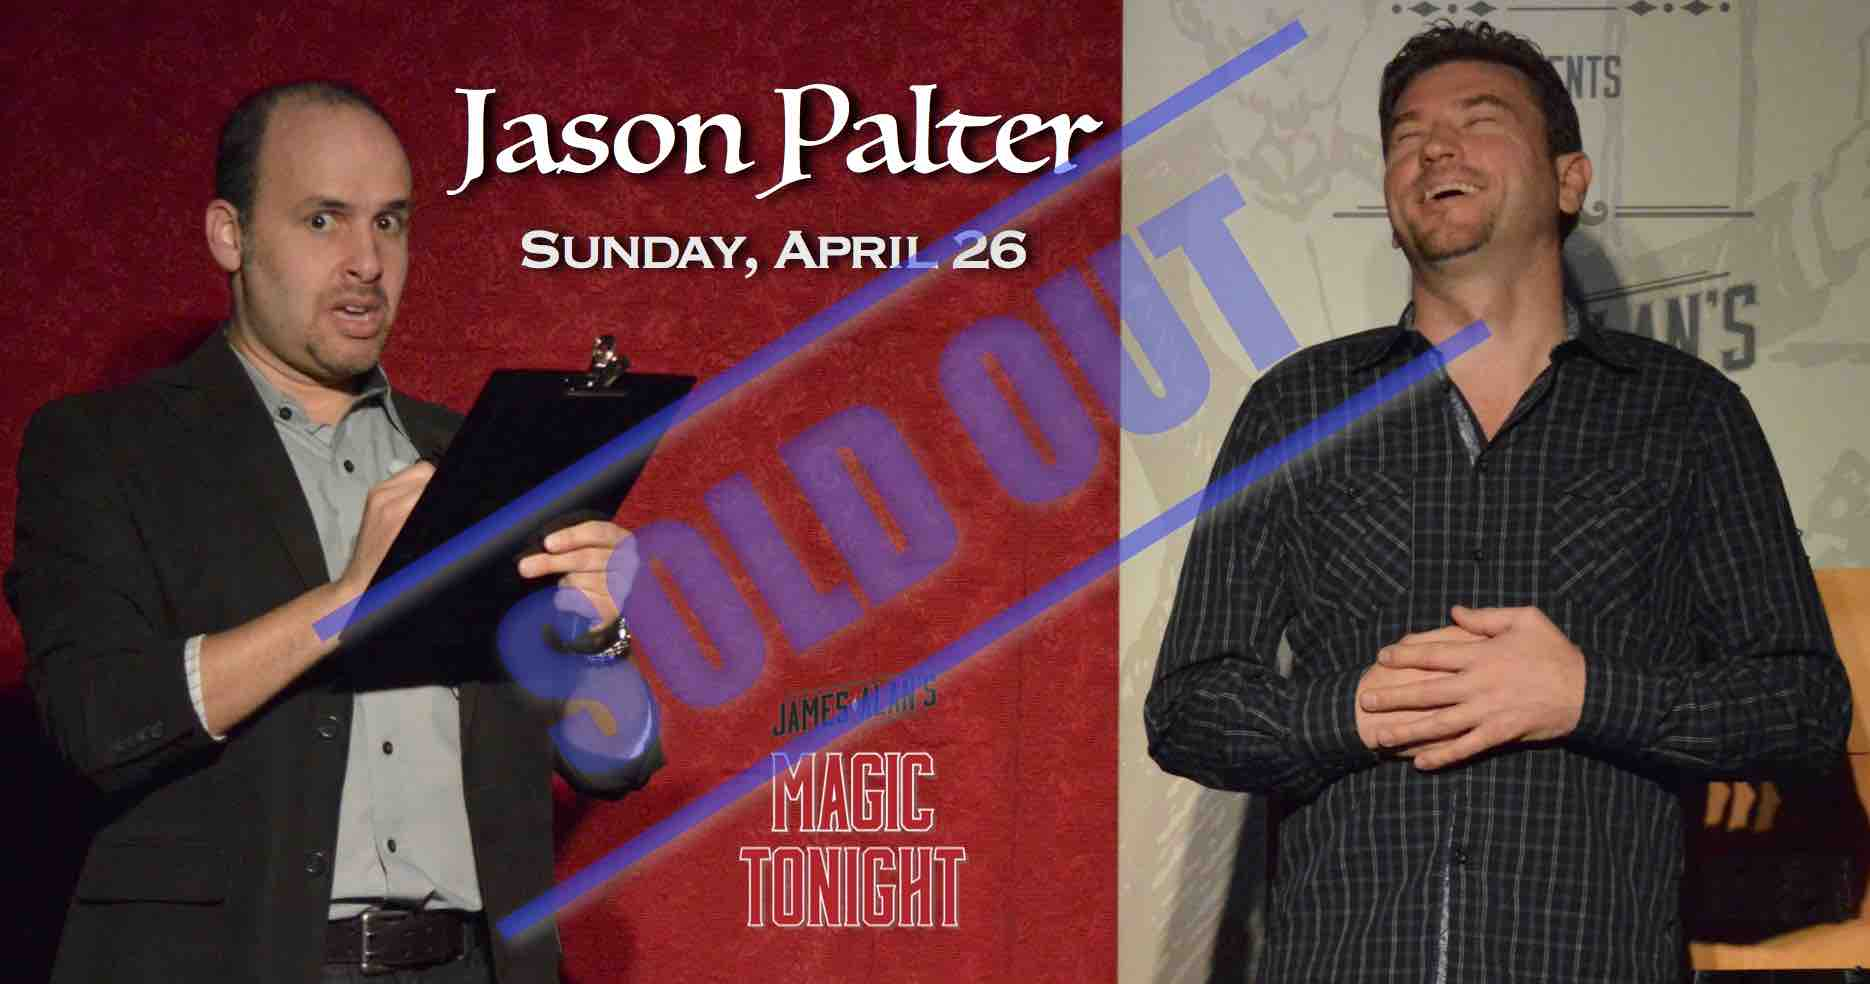 Apr 26 Jason Palter sold out